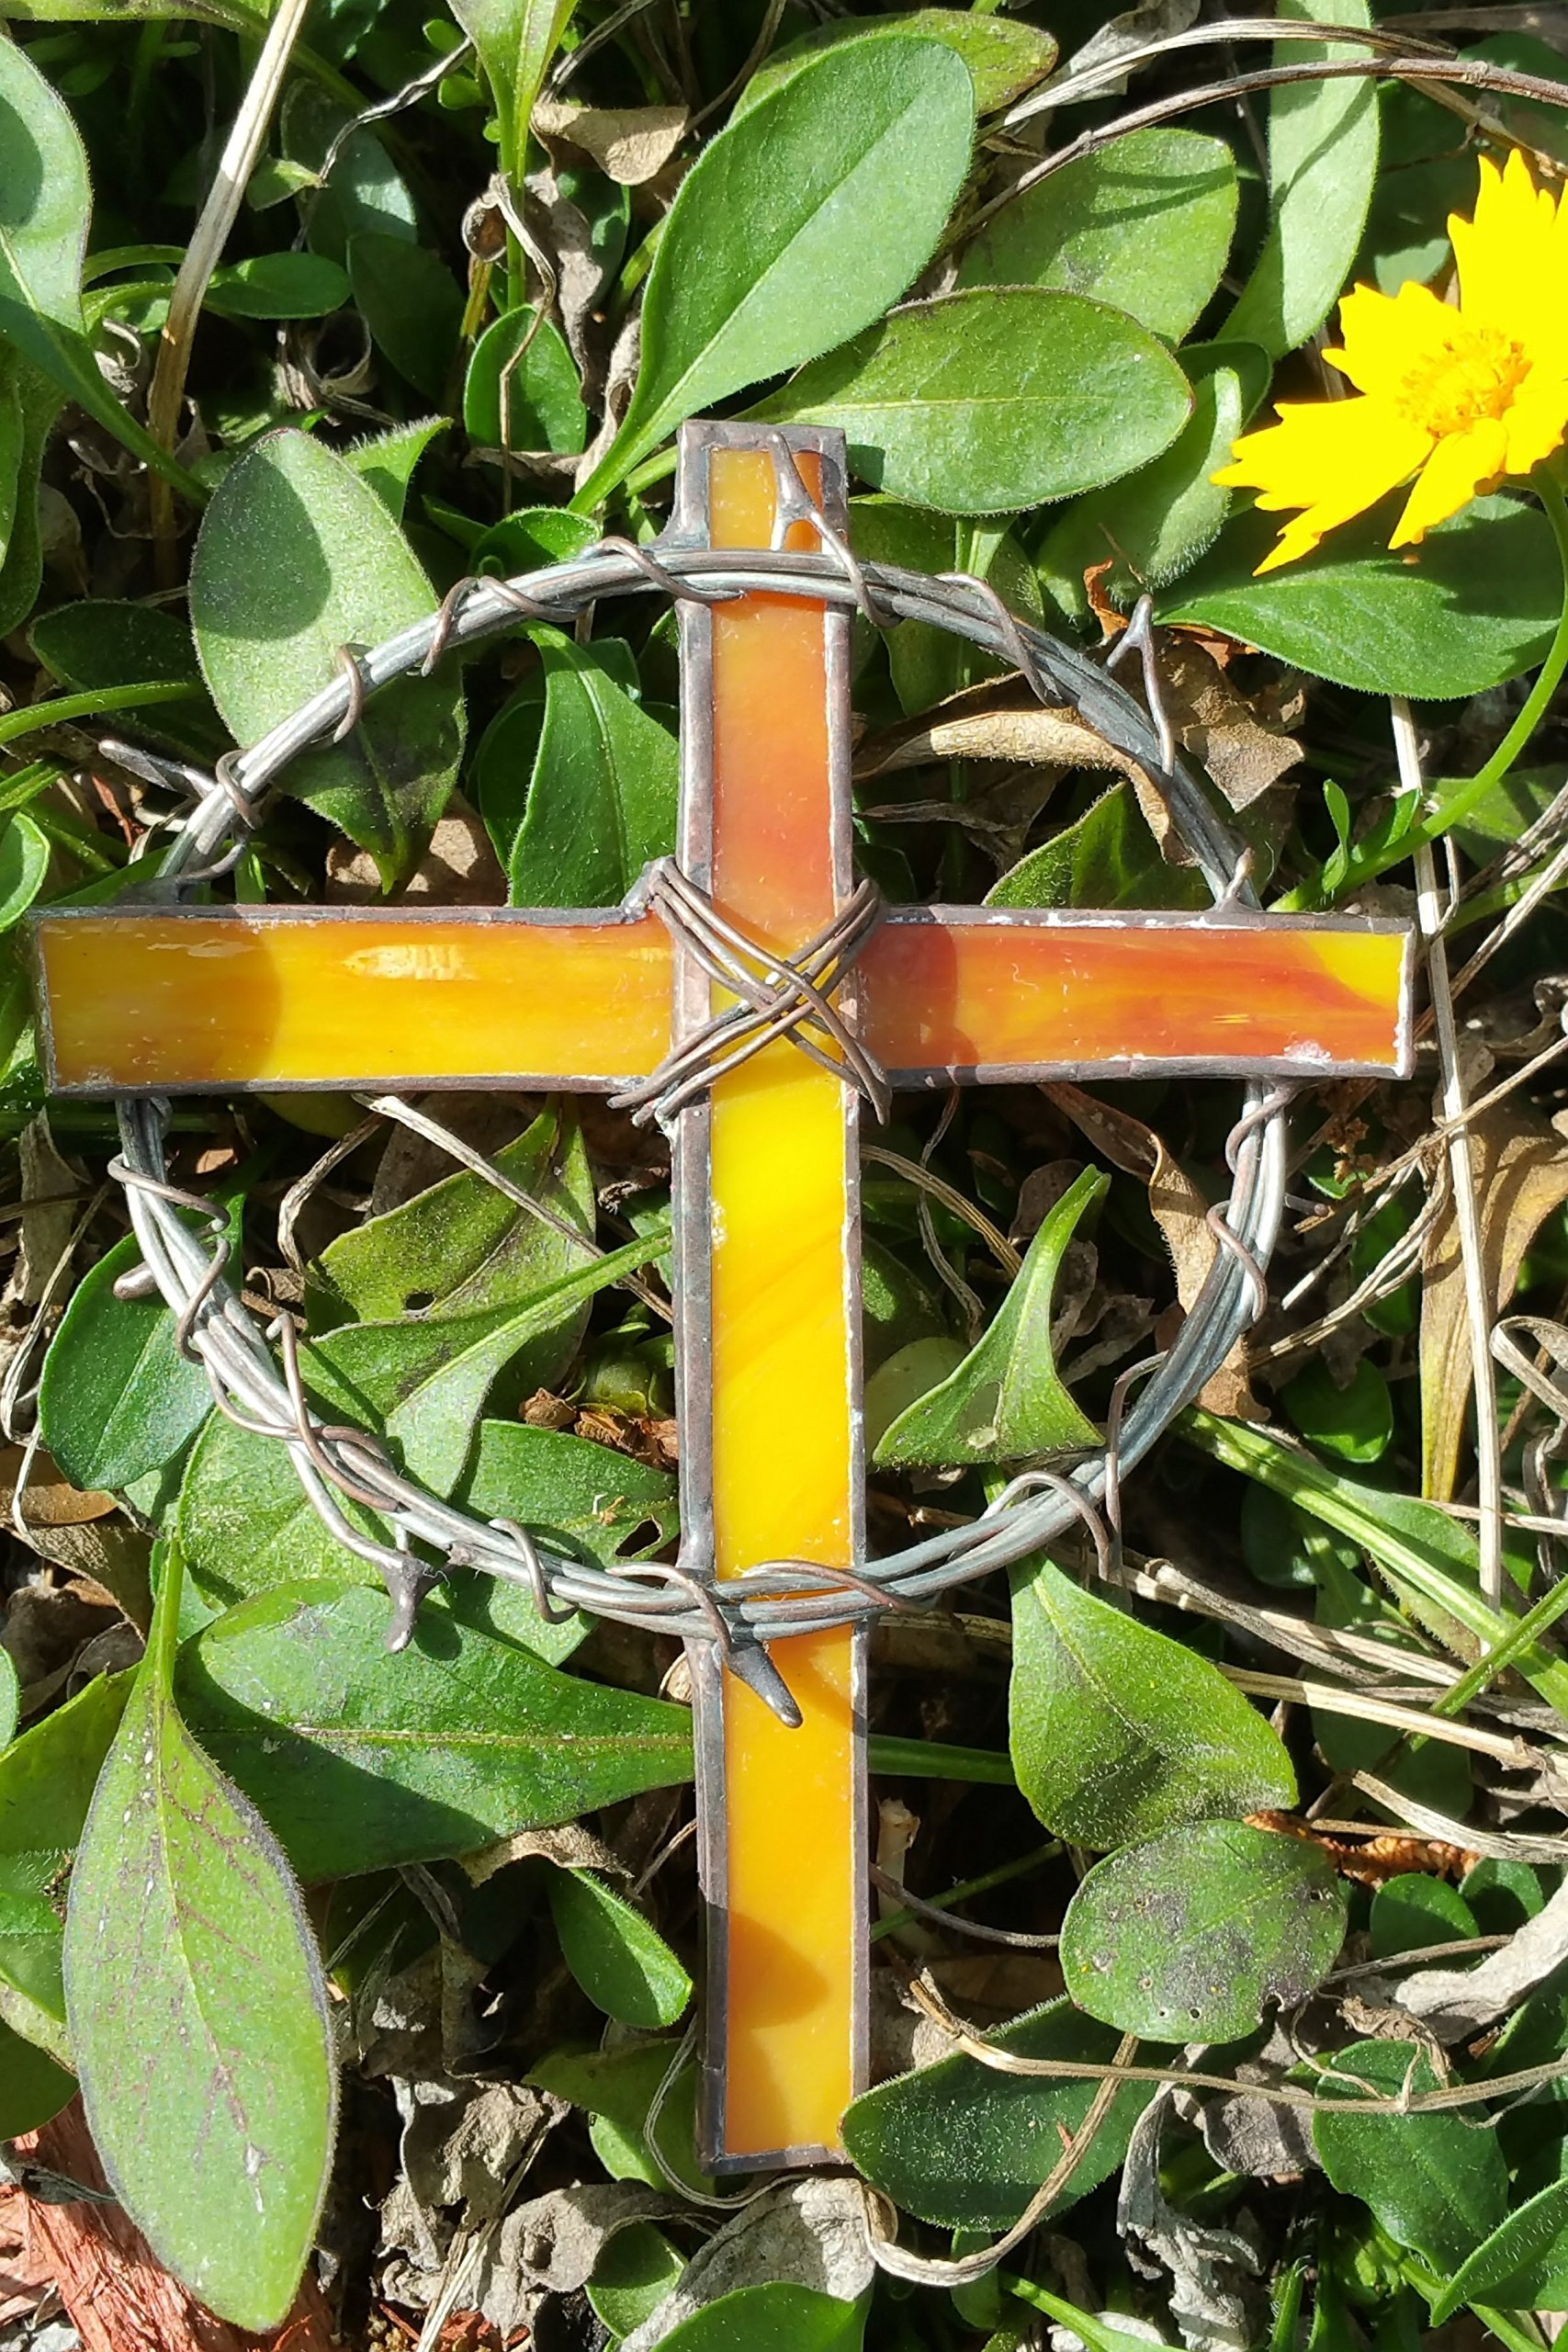 Handmade Stained Glass Crown of Thorns Cross Suncatcher Window Spirit Ornament